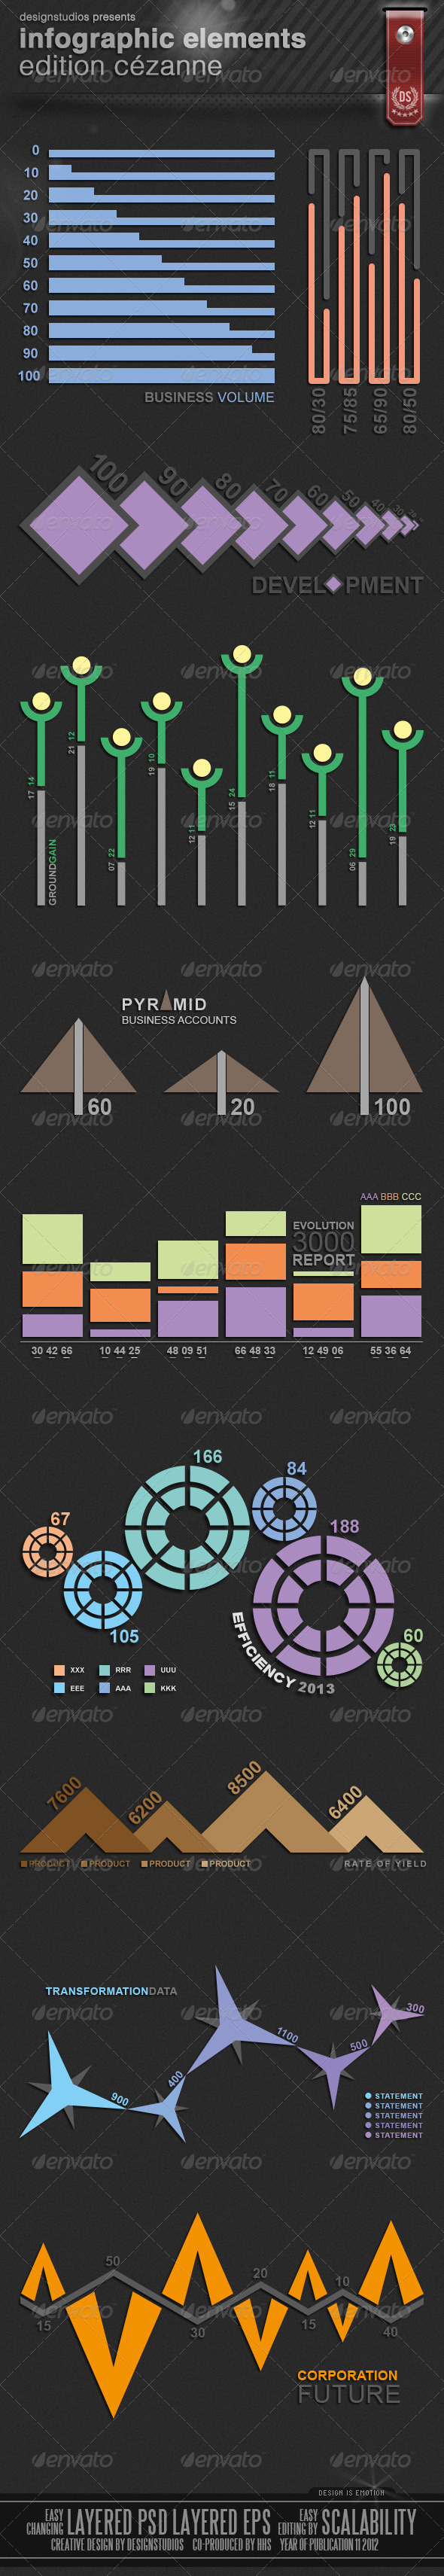 Infographic Elements Edition Cézanne - Infographics